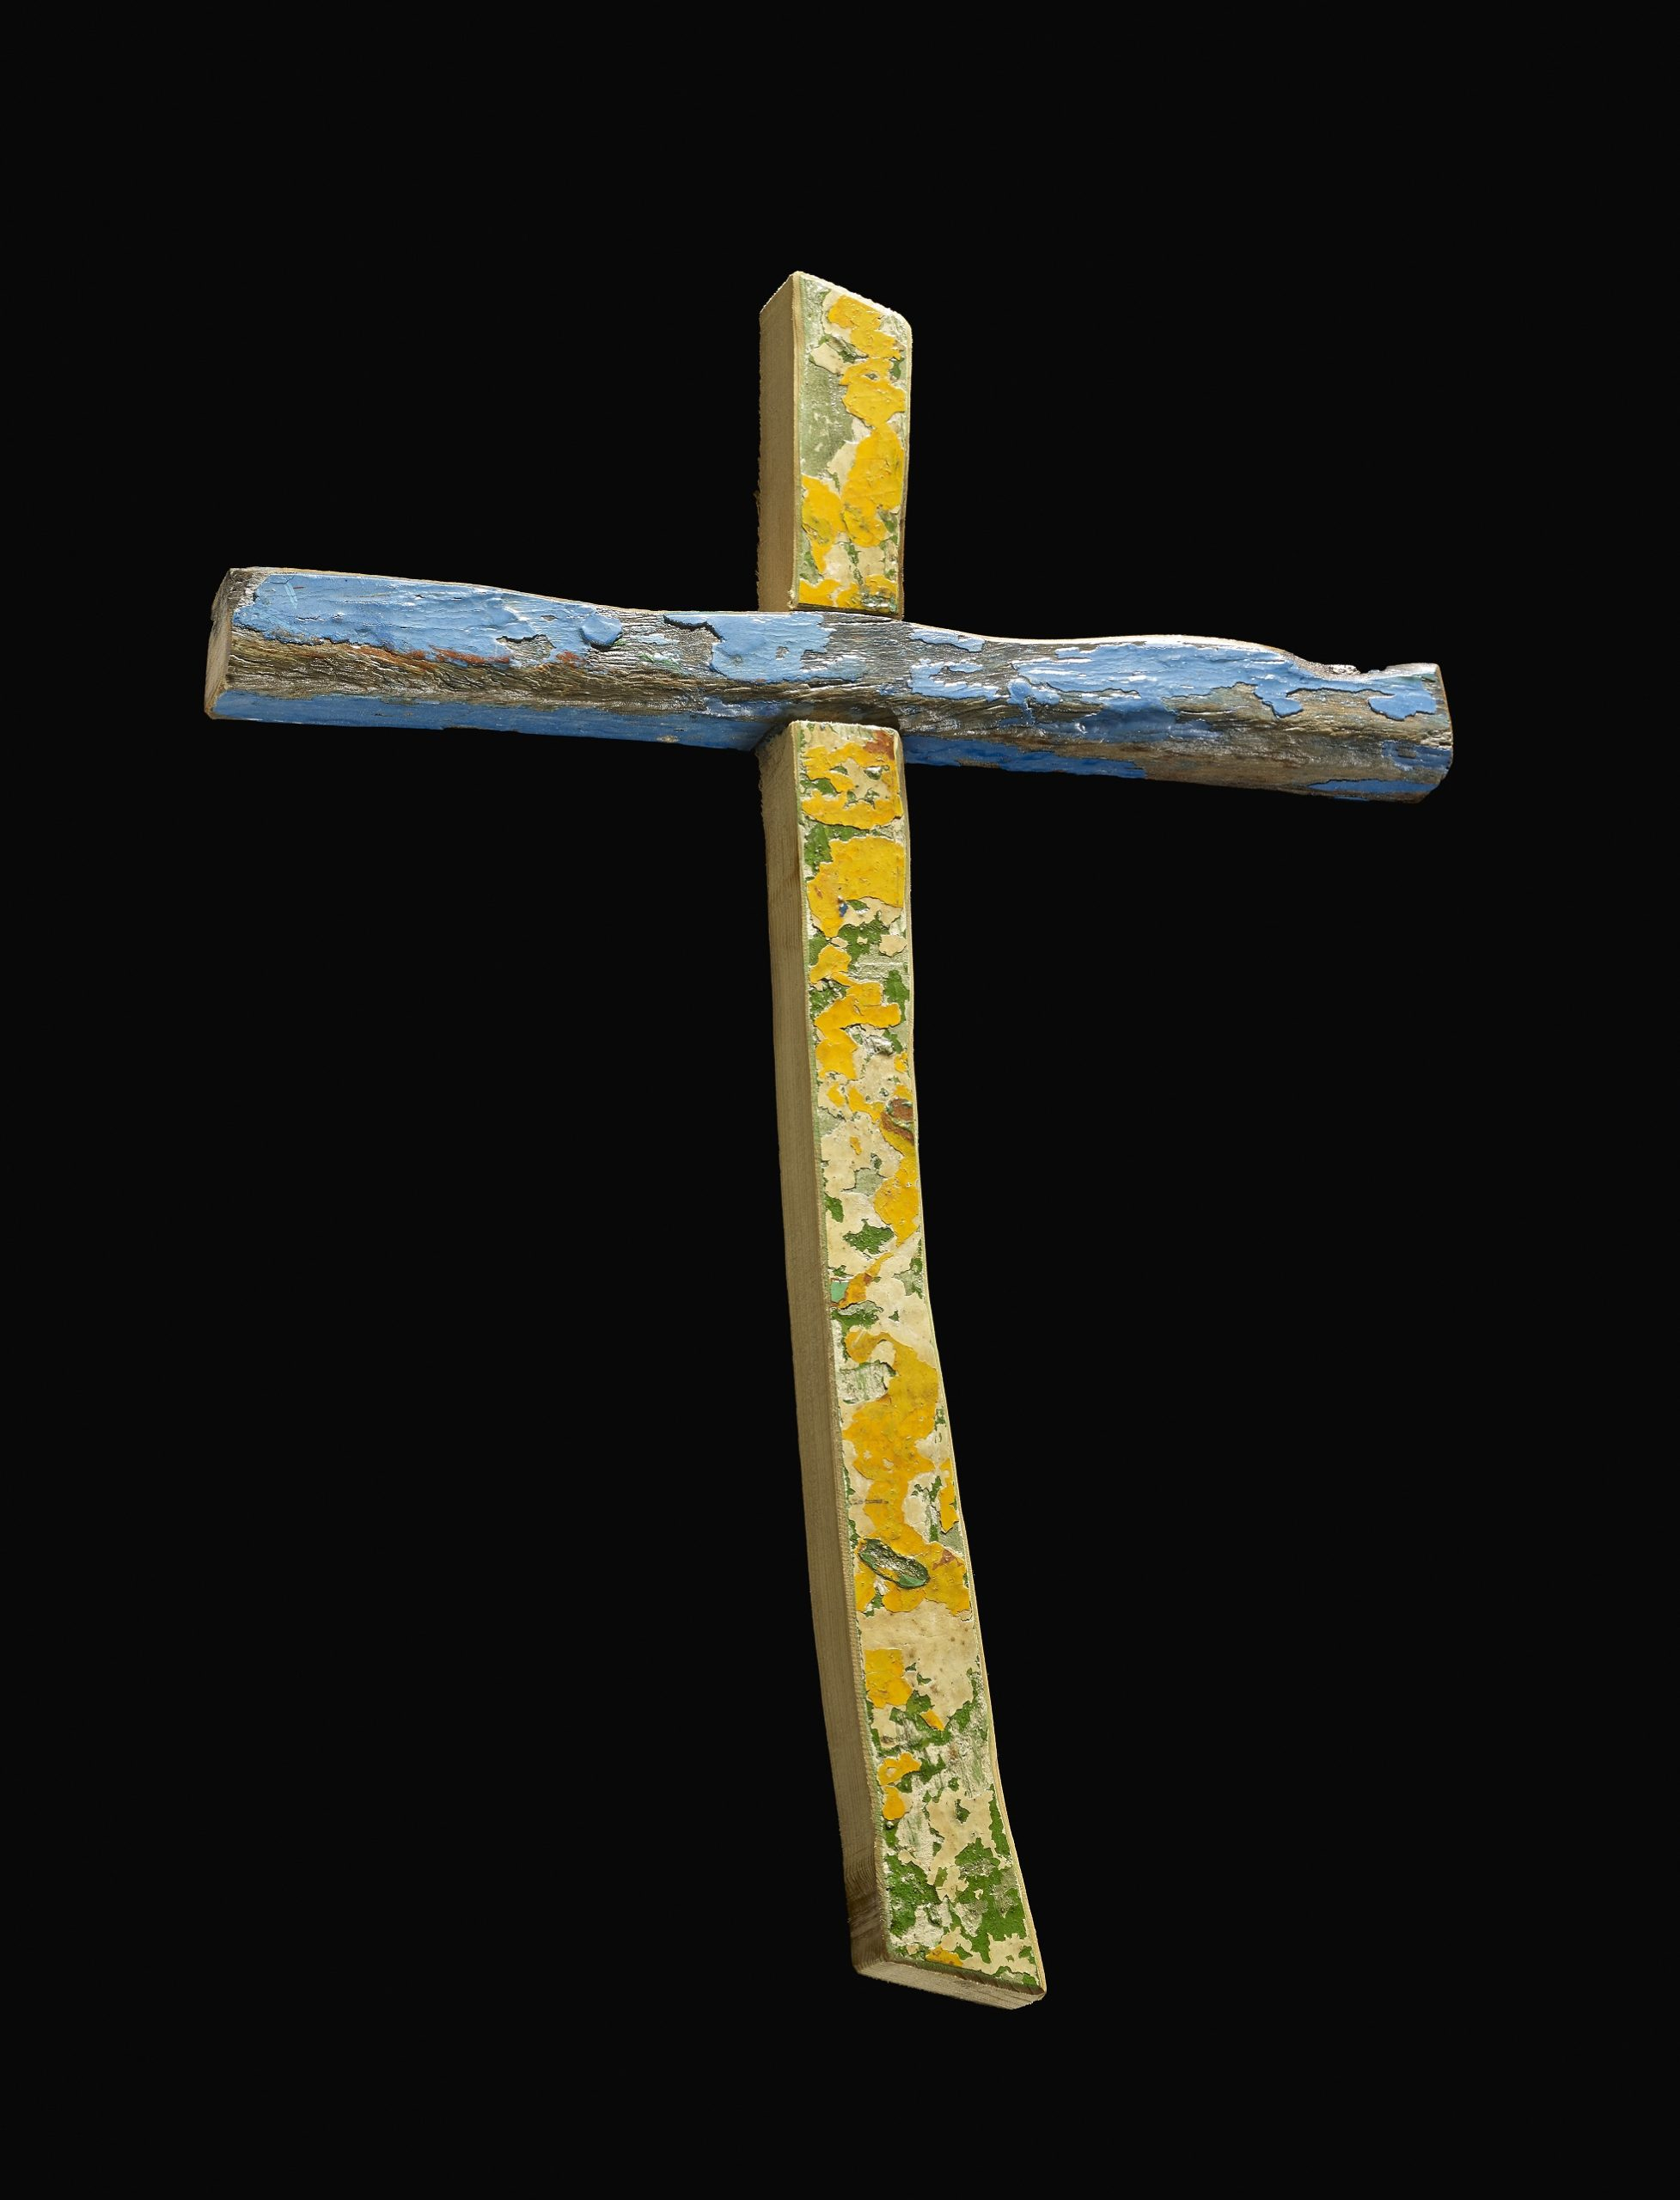 Wooden cross made from pieces of a boat. The vertical piece is yellow and green and the horizontal piece is blue.  The vertical and horiziontal pieces are joined with a cross halved joint. The cross piece retains scuffed blue paint on the front, upper and lower surfaces. The front of the vertical section has layers of damaged paint.